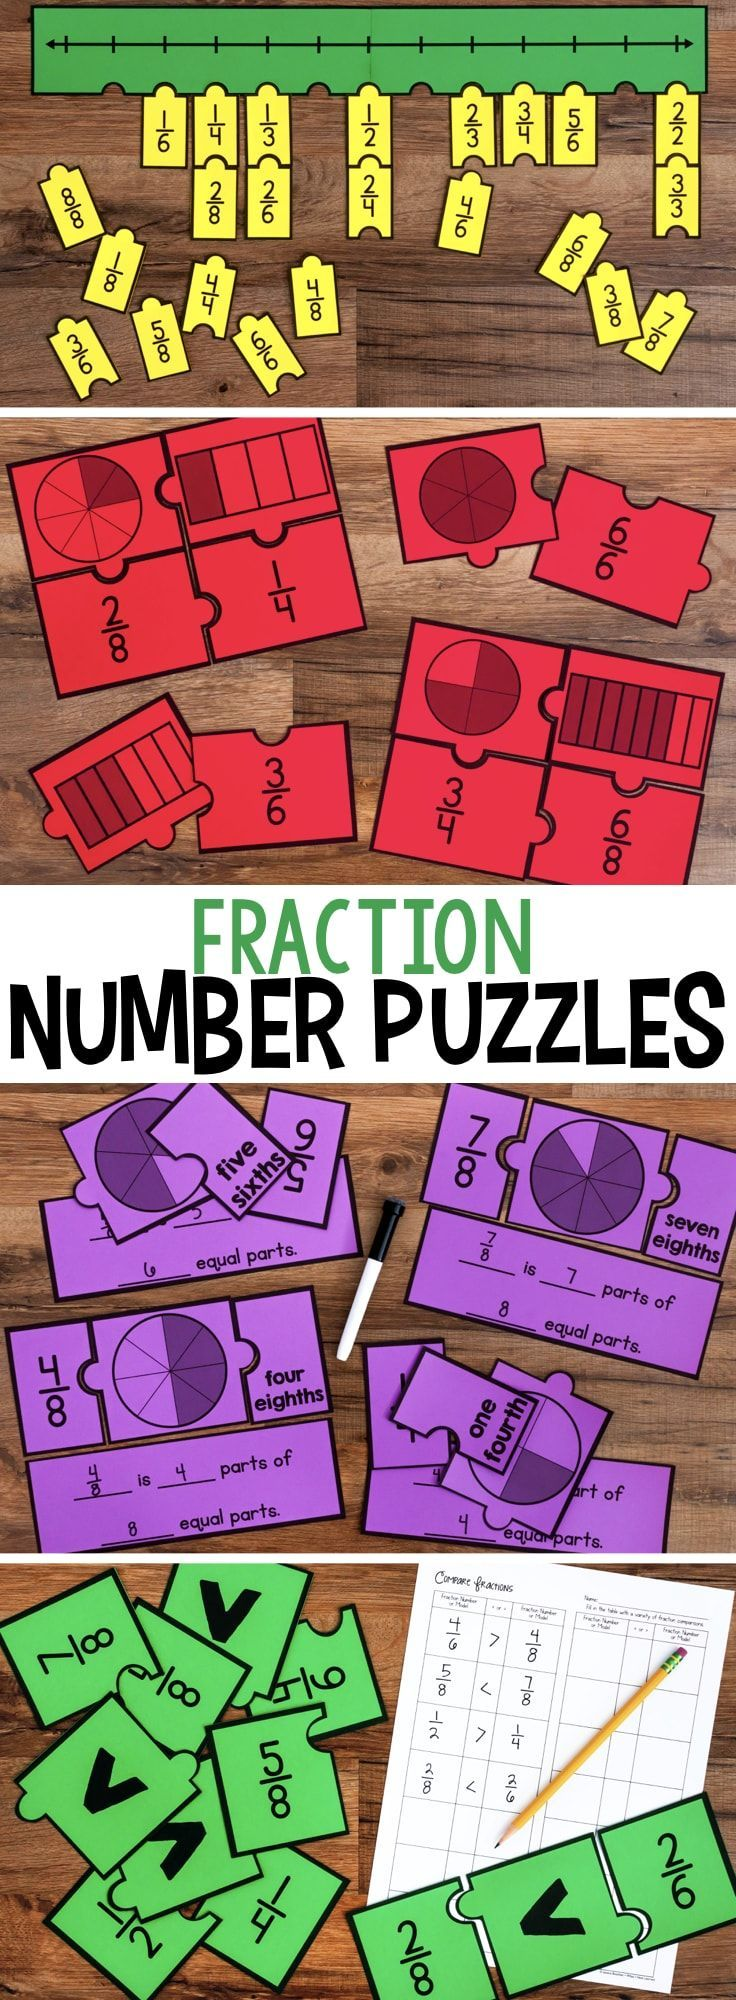 Engage students with a variety of Fraction Number Puzzles that provide practice with equivalent fractions, comparing fractions, and placing fractions on a number line. These are great for math stations or math centers. #fractions